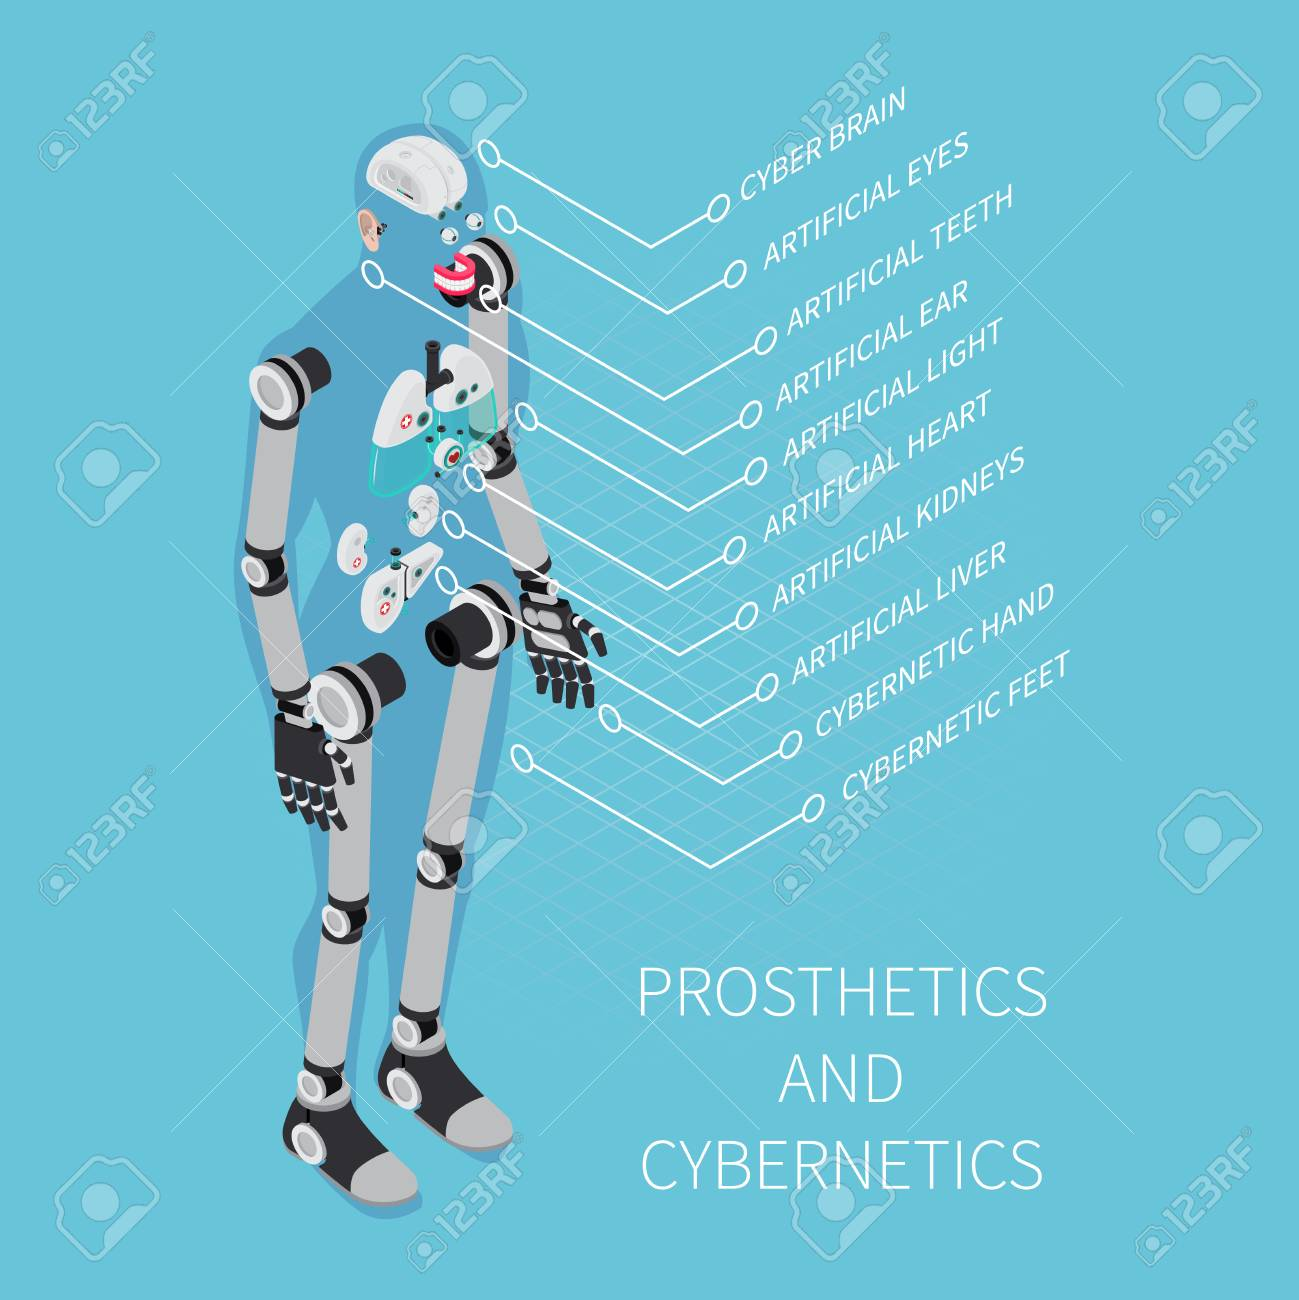 Prosthetics and cybernetics composition with healthcare symbols on blue background isometric vector illustration - 96752469